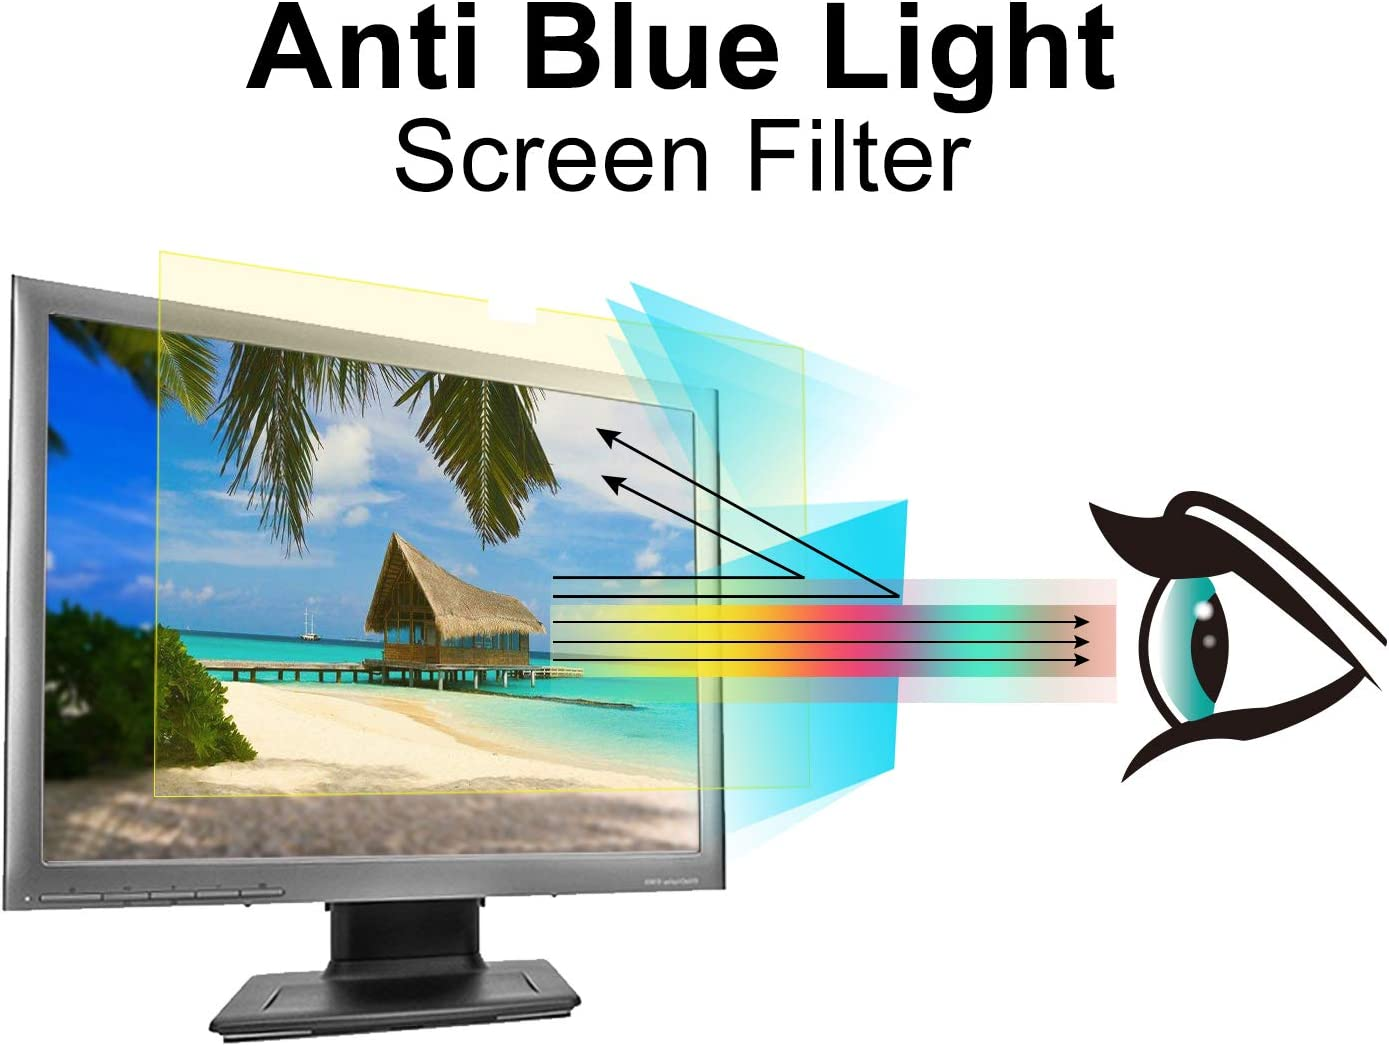 Universal Widescreen Desktop PC LED Monitor Panel Anti-UV /& Anti-Radiation Protection Filter Hanging Type 16:9//16:10 26-27 Widescreen Anti Blue Light Screen Filter for 26-27 inches